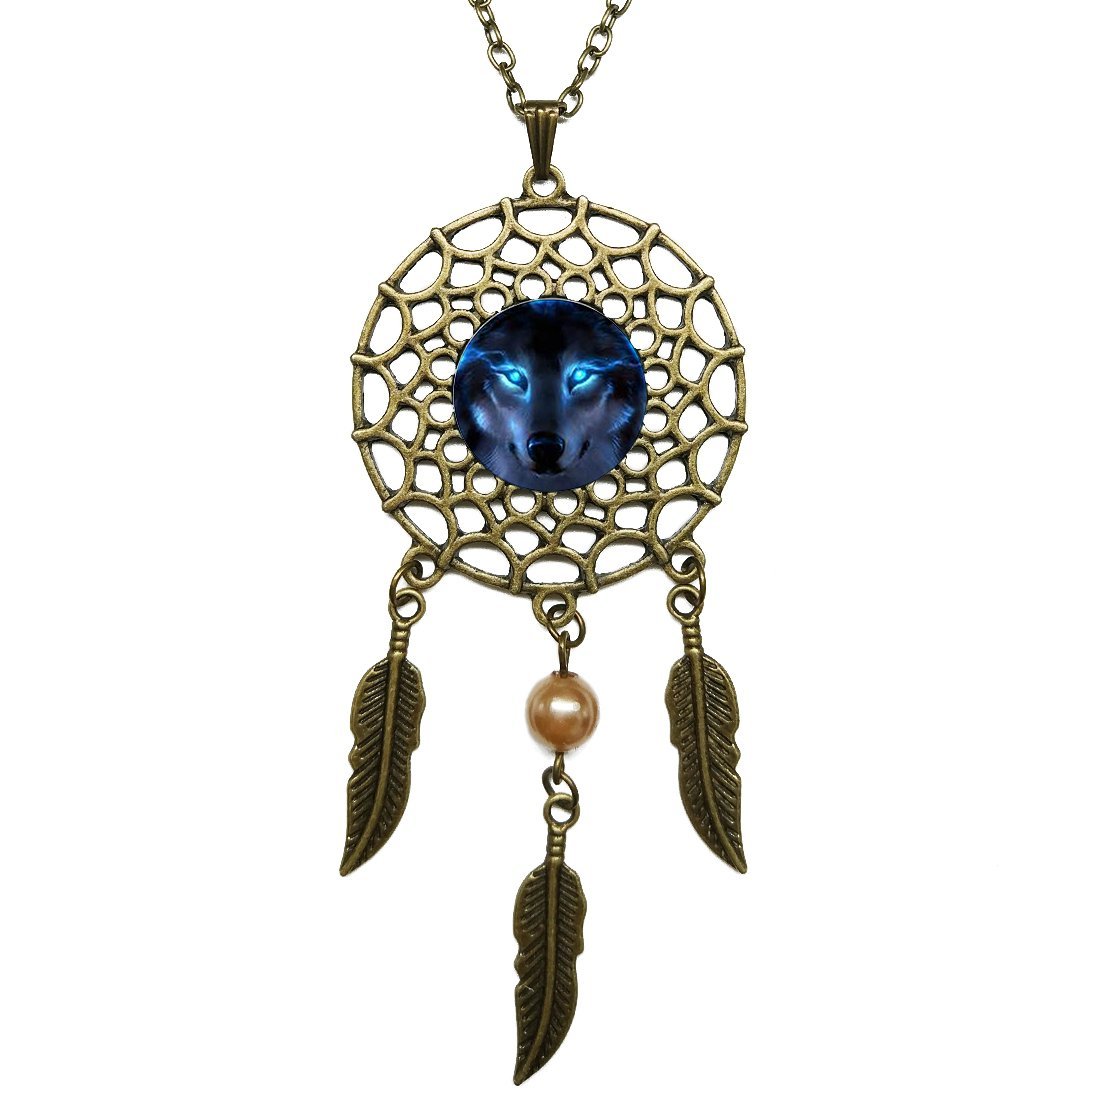 Dreamcatcher Pendant Nordic Wiccan Wolf Bronze Chain Long Necklace Jewelry Dangling Feather Charms Glass Inlaid